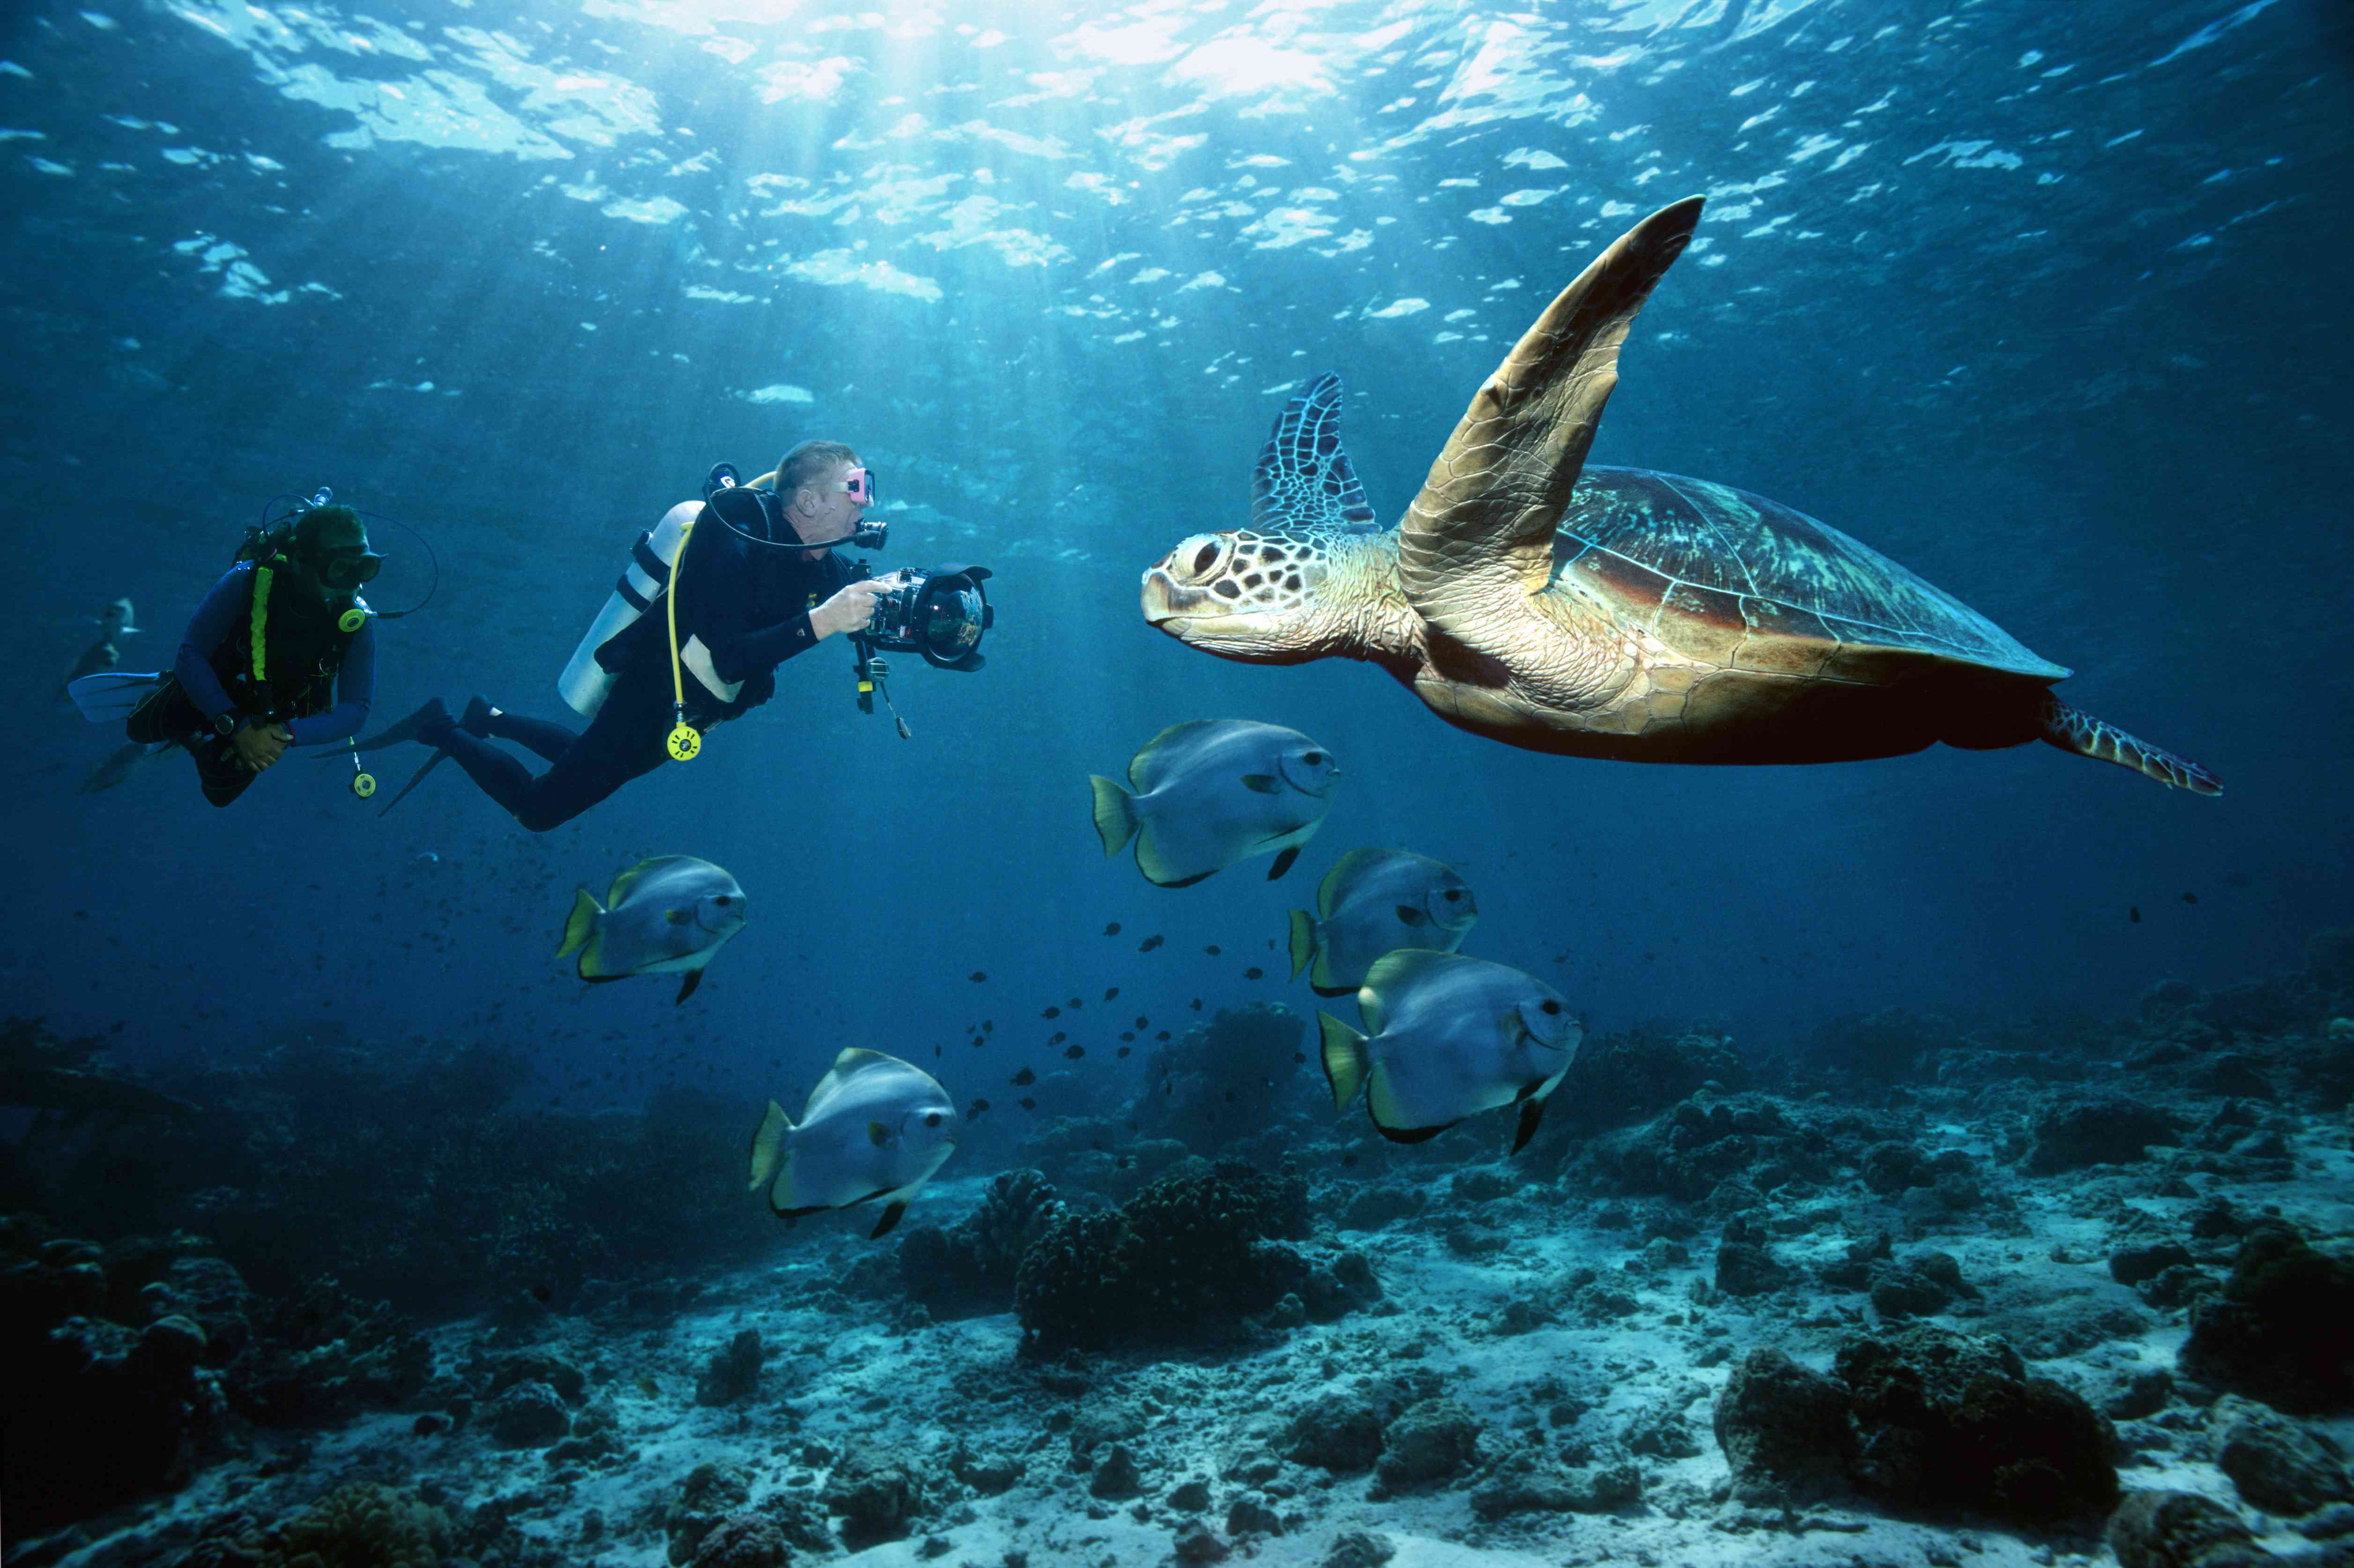 Scuba divers photographing a sea turtle in Thailand